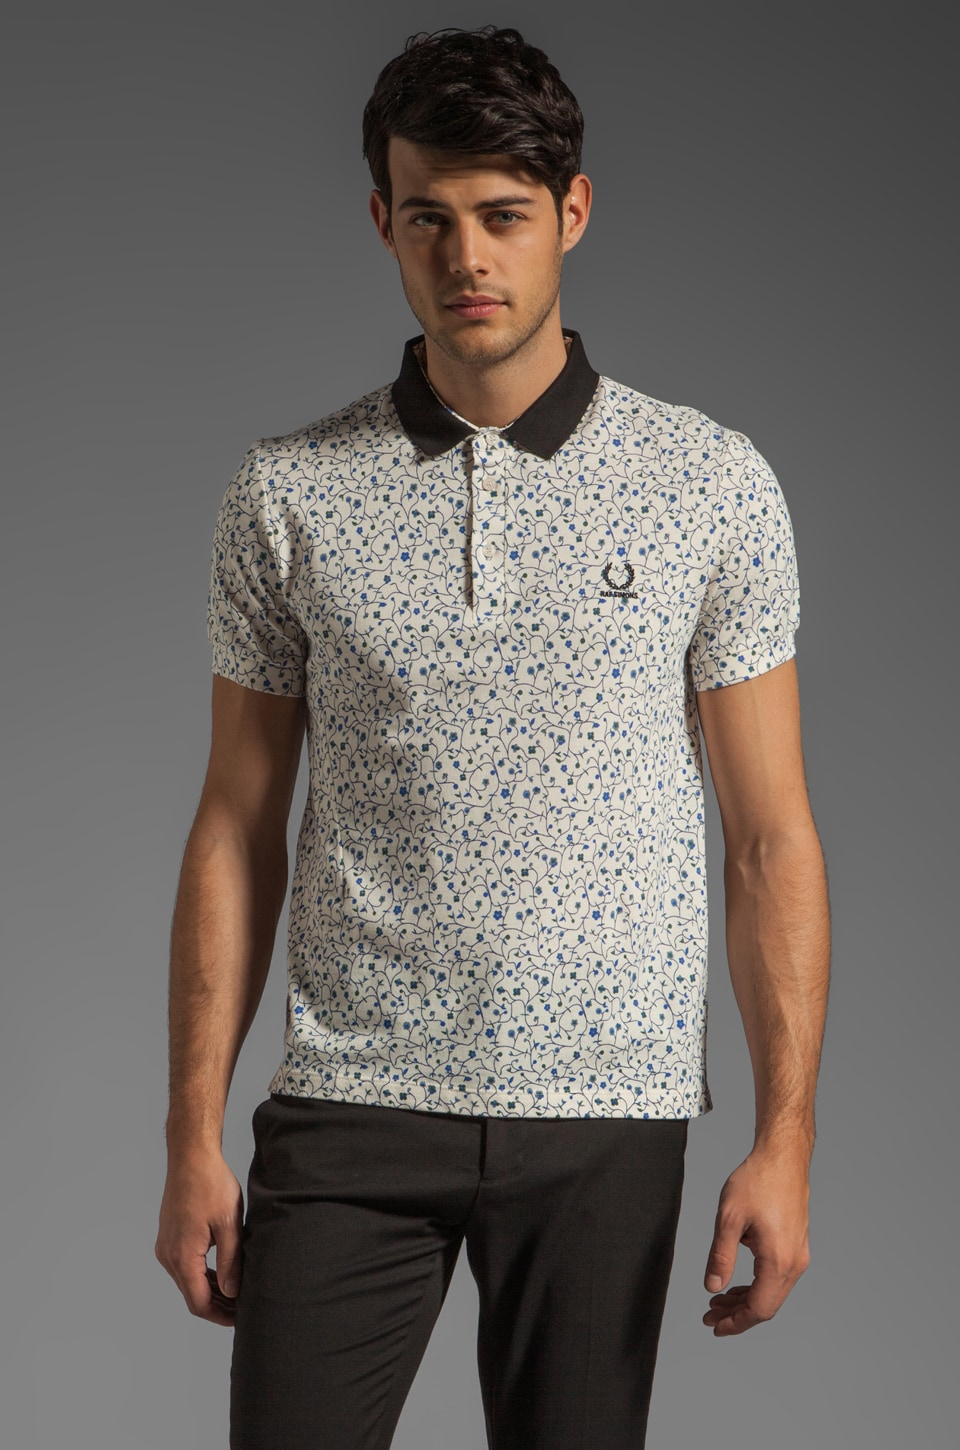 Fred Perry x Raf Simons Fred Perry Floral Print Shirt Polo in White